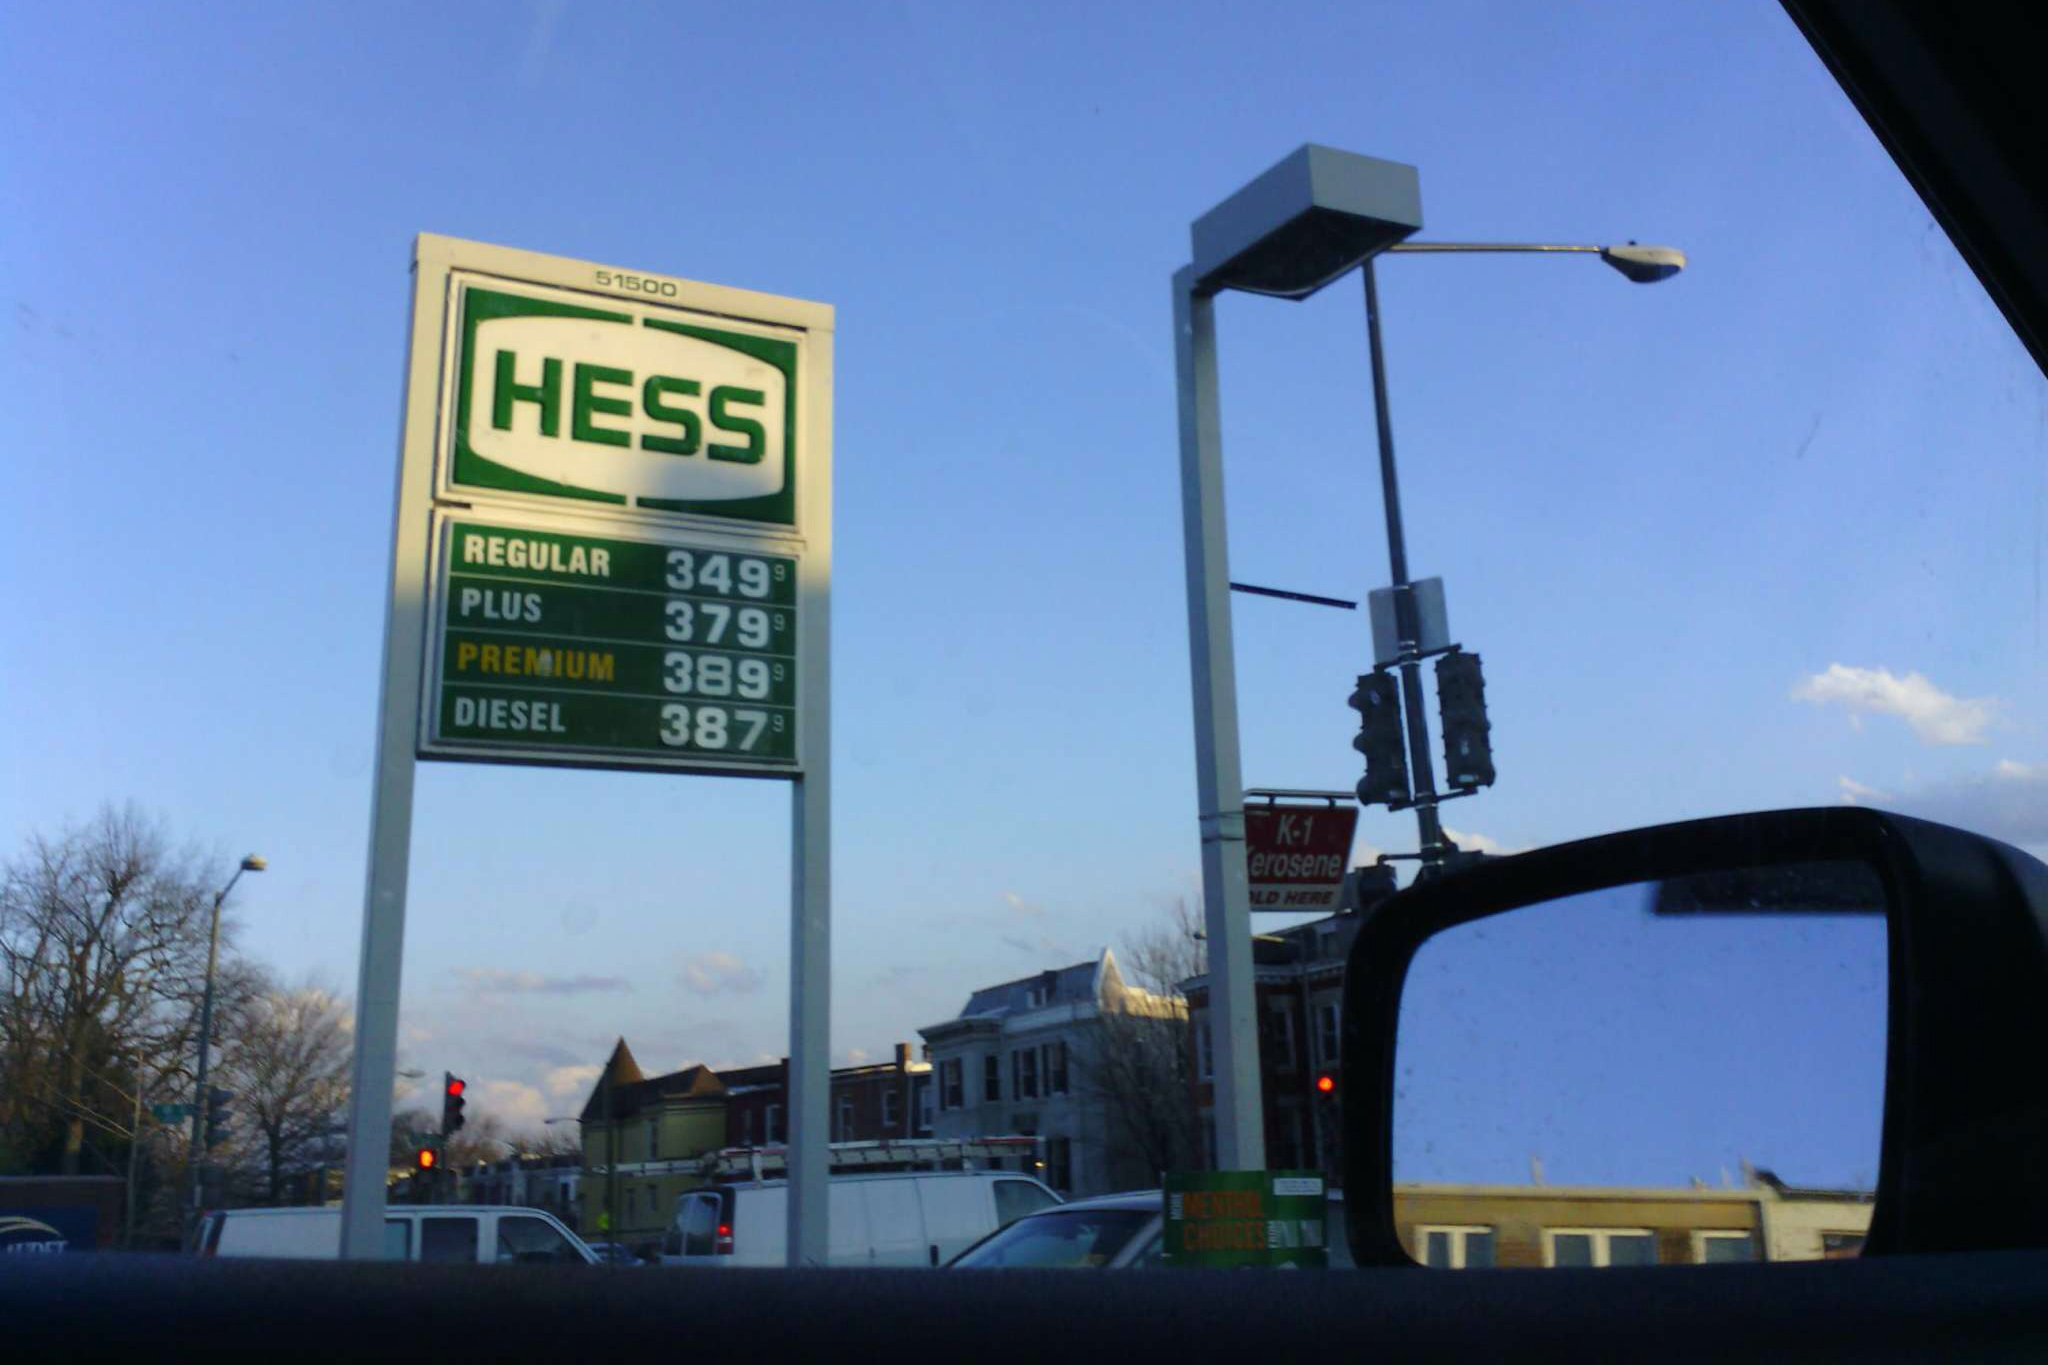 One potential upside: Narrative helps record gas prices when you stop to fill up.